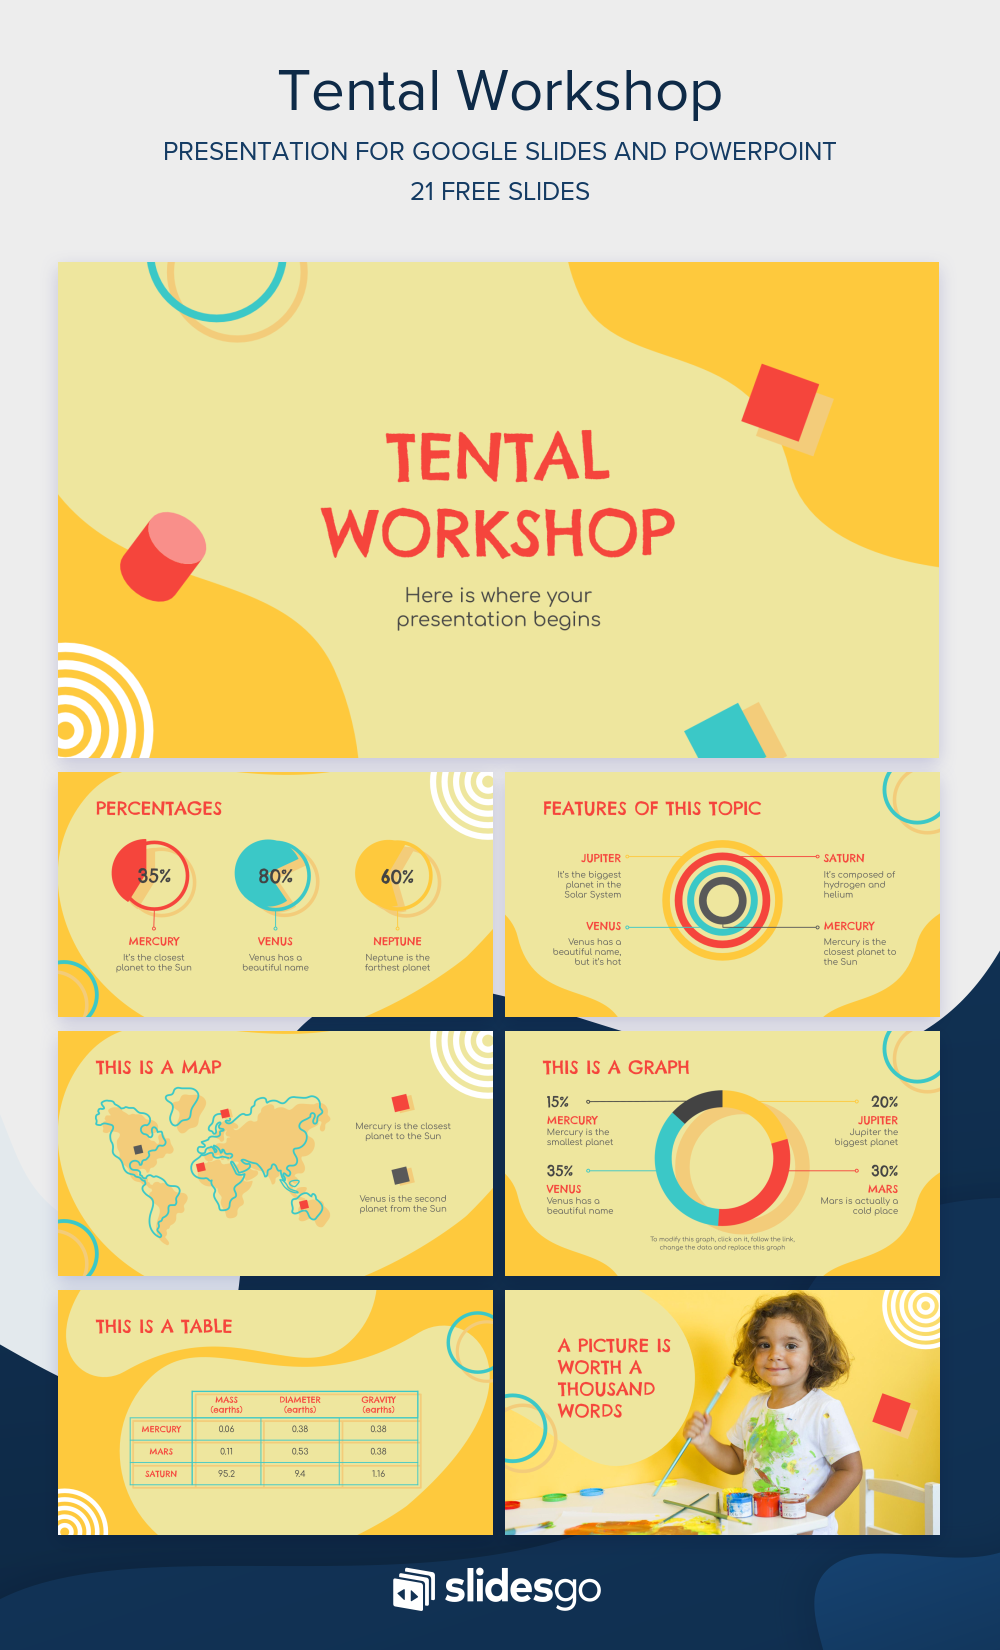 Create Your Own Arts And Crafts Workshop And Encourage Kids To Try It By Showing Them Thes Powerpoint Powerpoint Design Templates Creative Powerpoint Templates